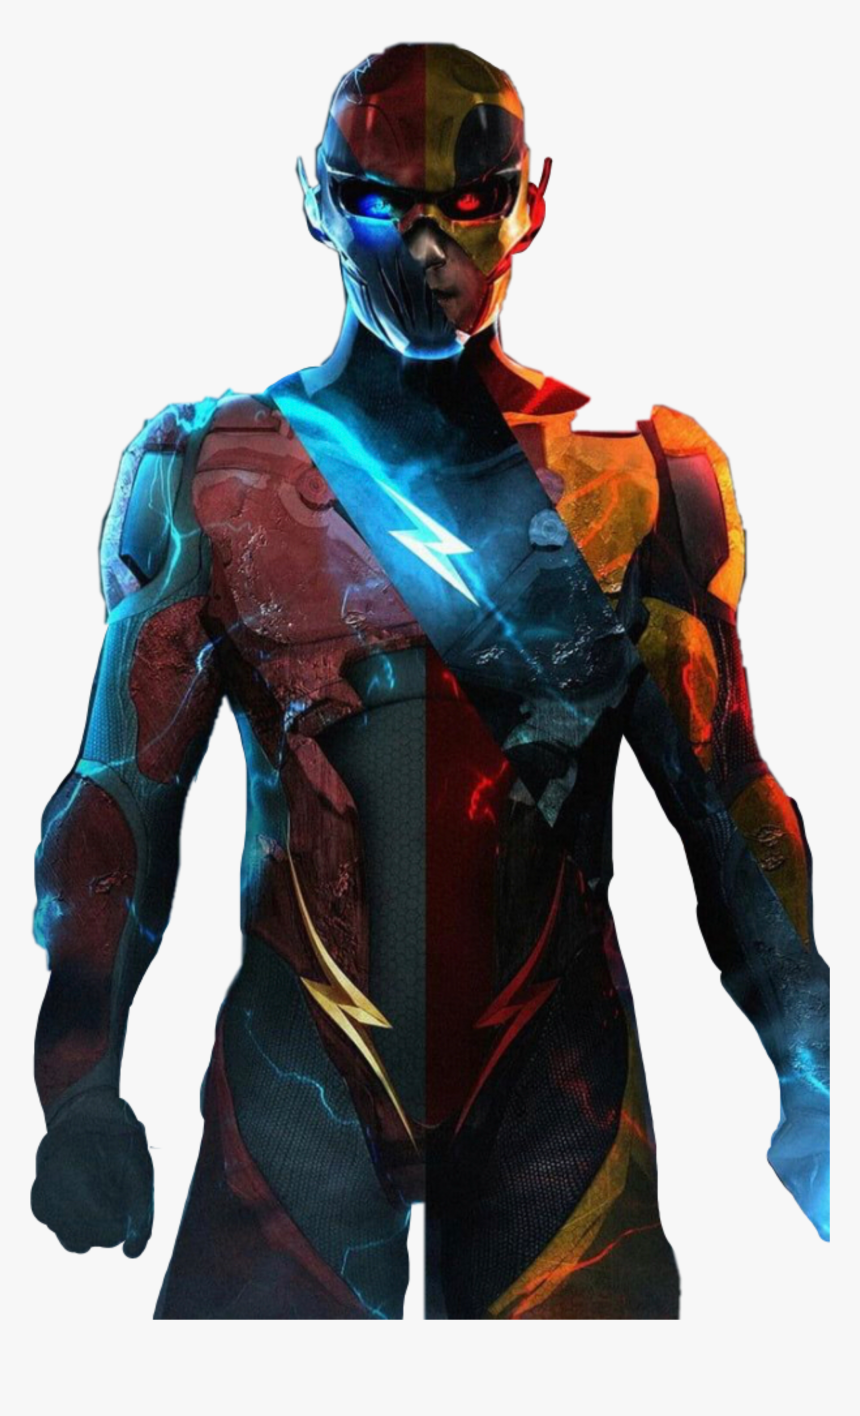 Flash Reverseflash Savitar Eobard Thawne Black Flash Zoom And Reverse Flash Hd Png Download Kindpng